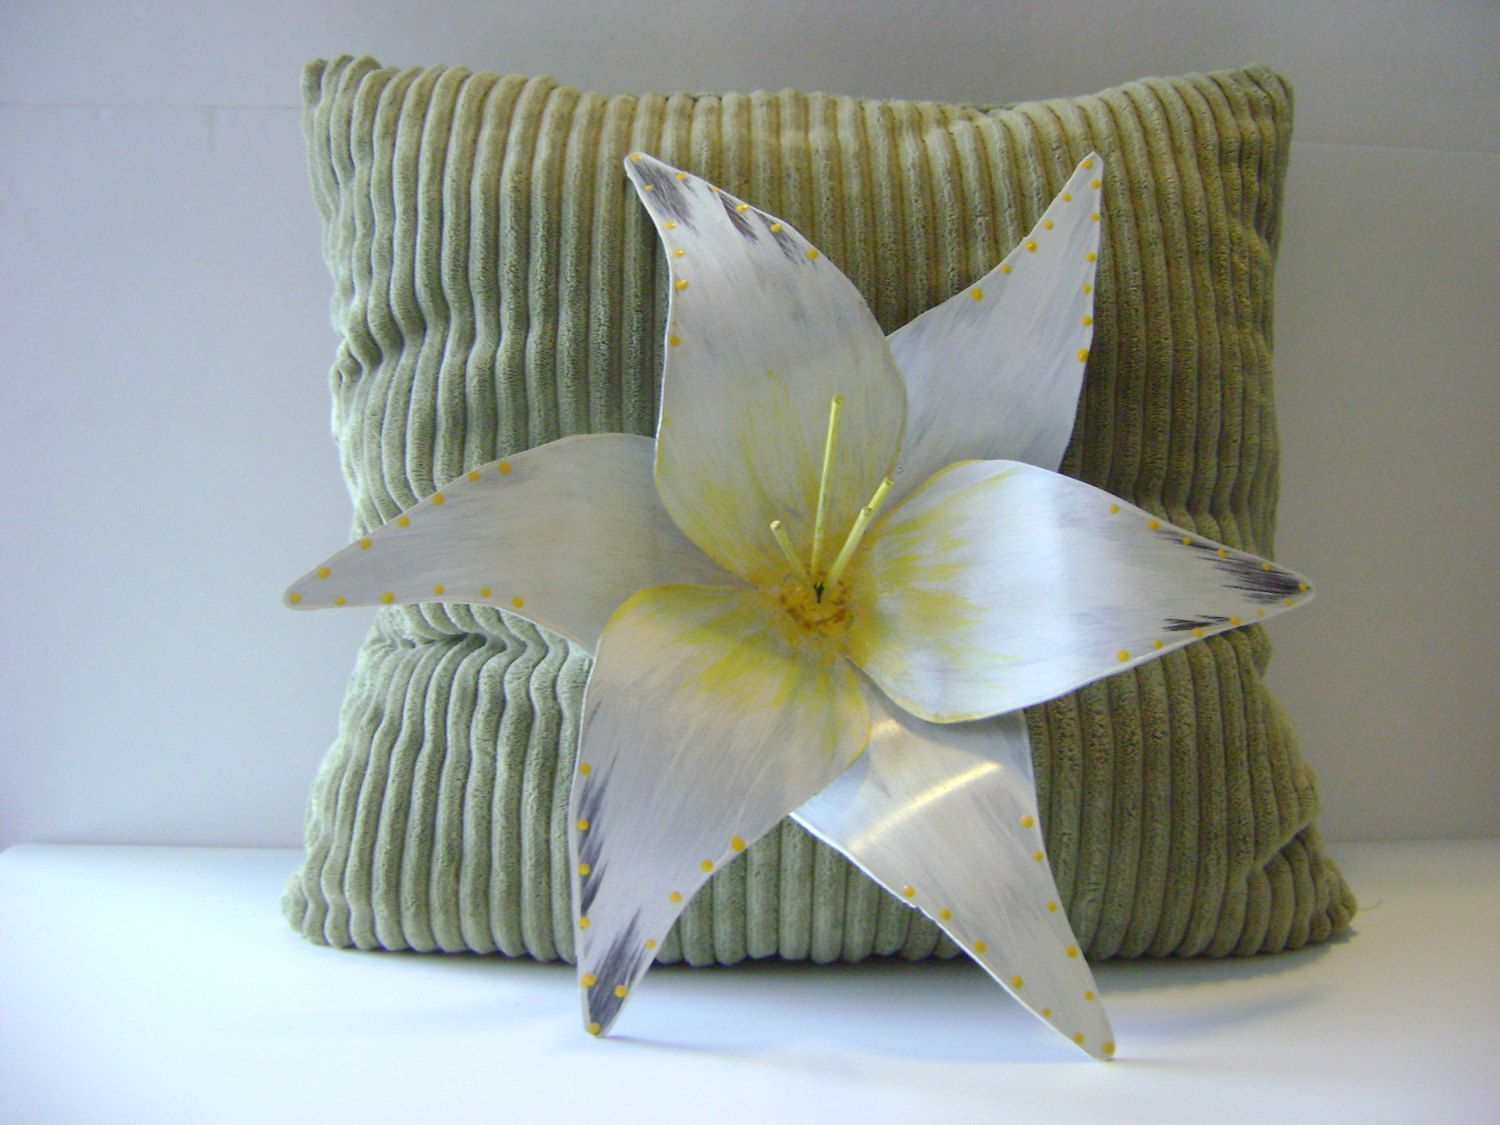 Metal Flower Wall Hanging Metal Garden Art Metal Wall Art White Lily Sculptured Flower